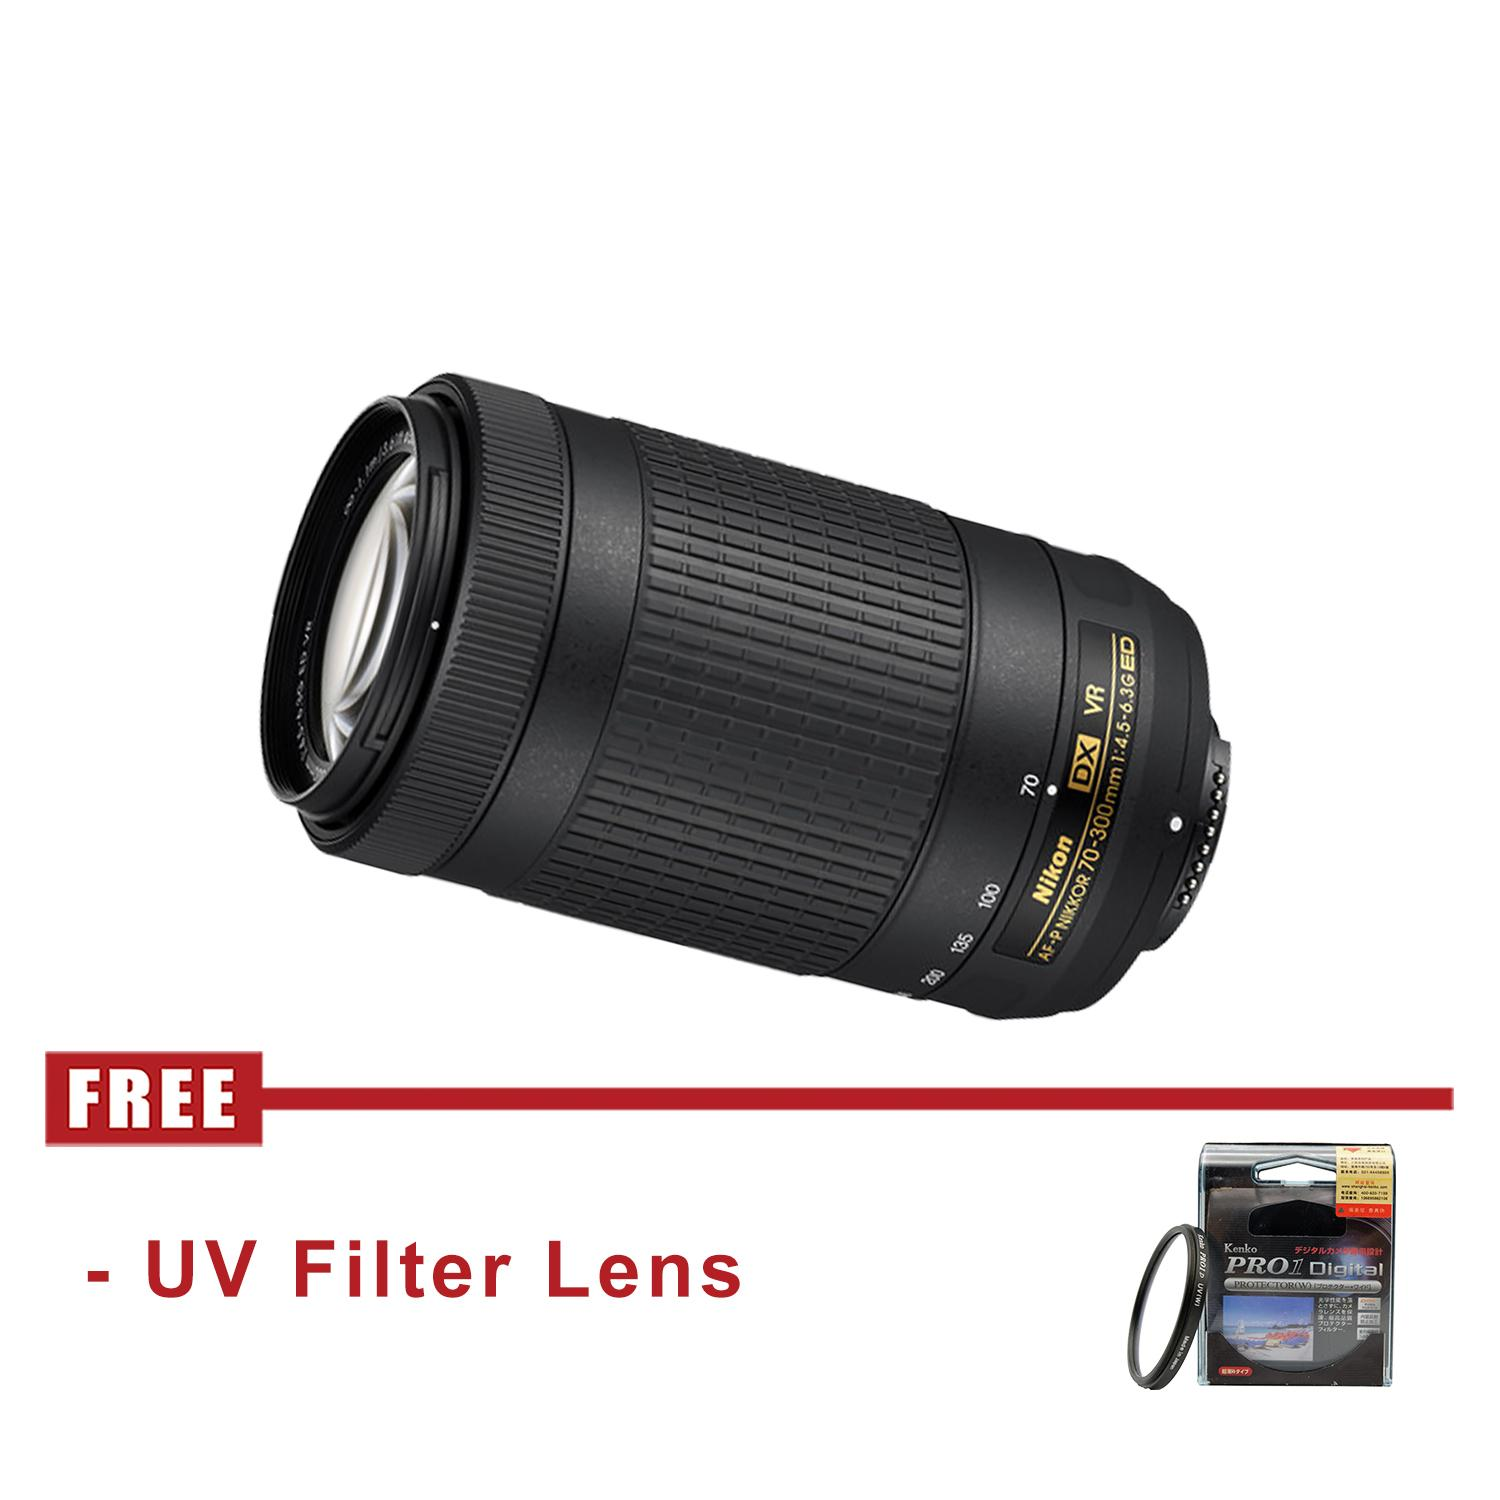 Nikon AF-P DX NIKKOR 70-300mm f/4.5-6.3G ED VR - FREE UV Filter